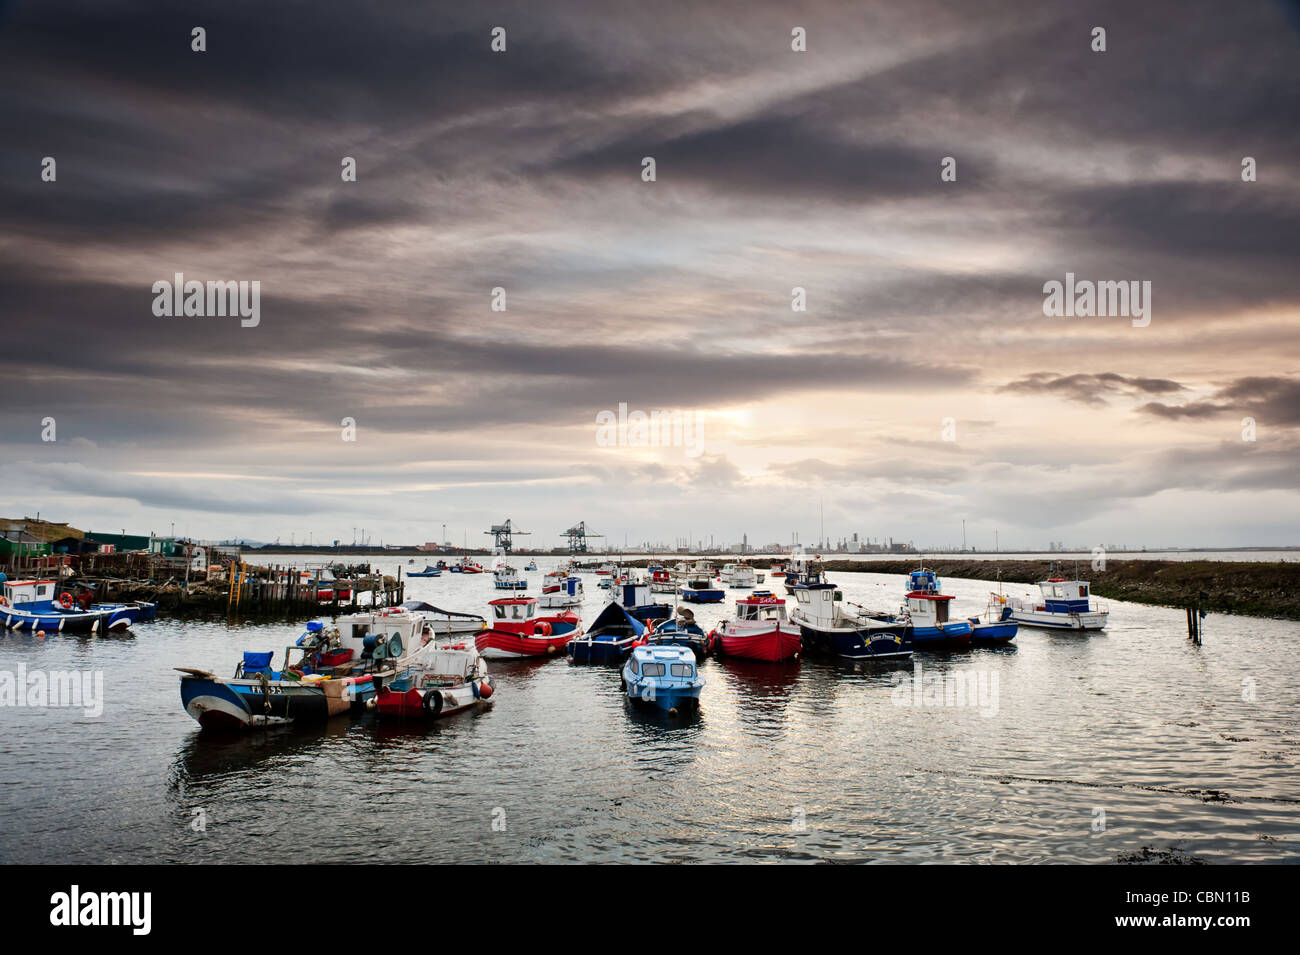 Teesside industry at South Gare & Paddy's Hole, with fisherman's boats - Stock Image